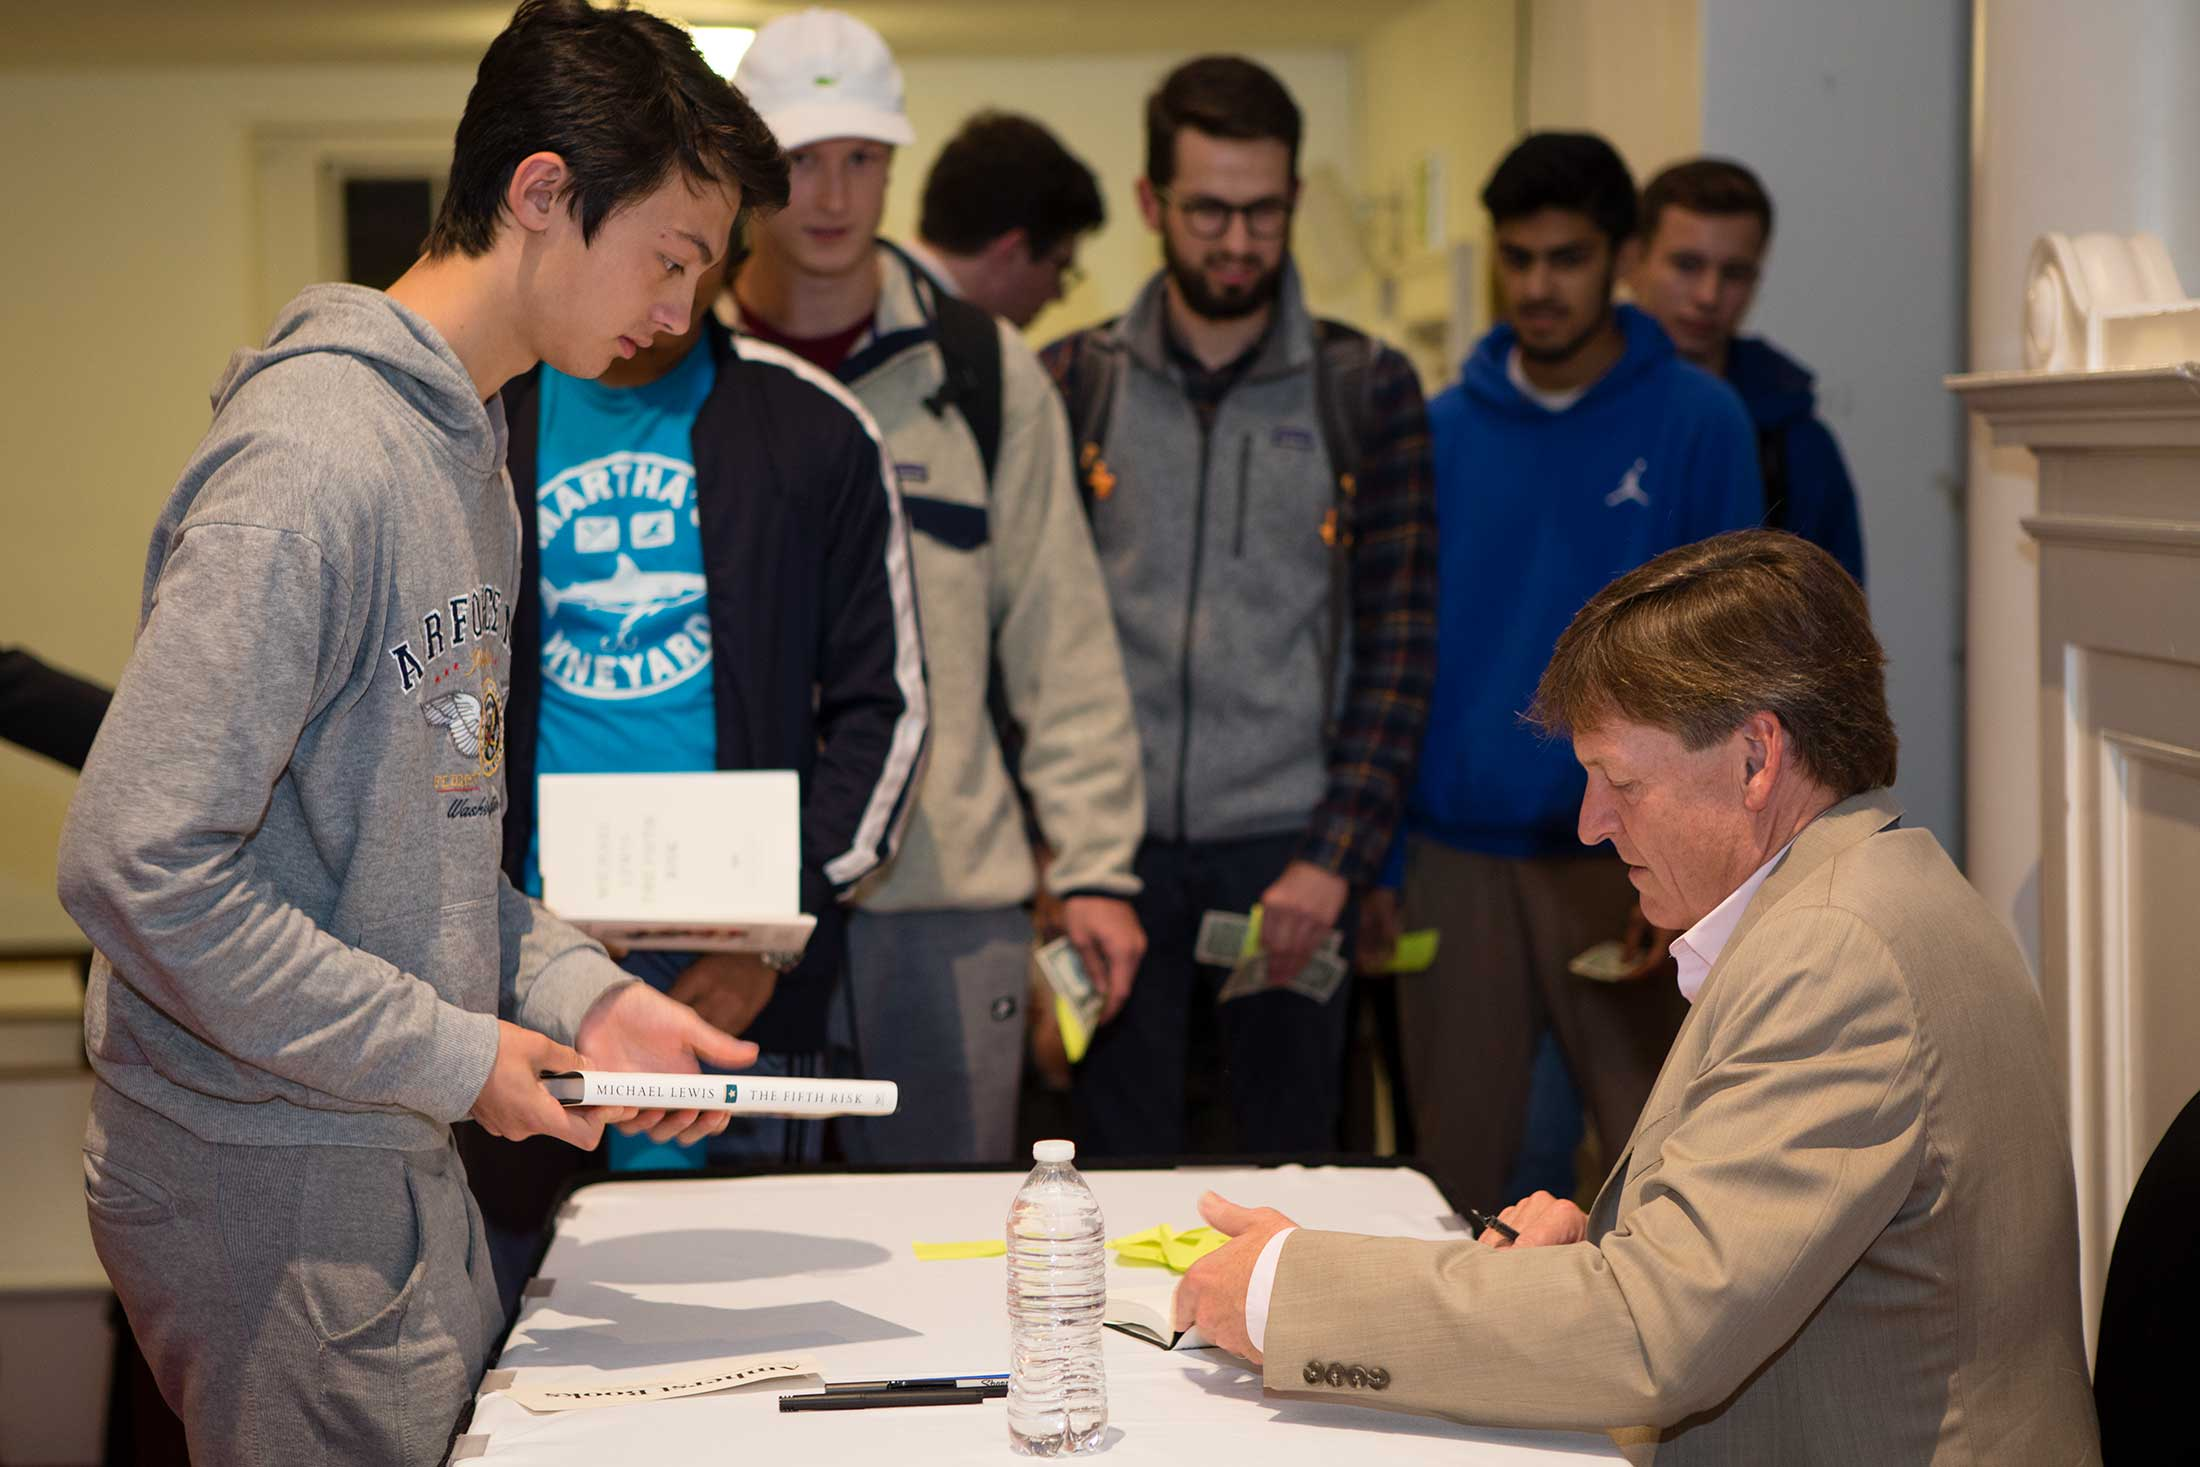 Student wait in line to get copies of Michael Lewis' book signed by the author.